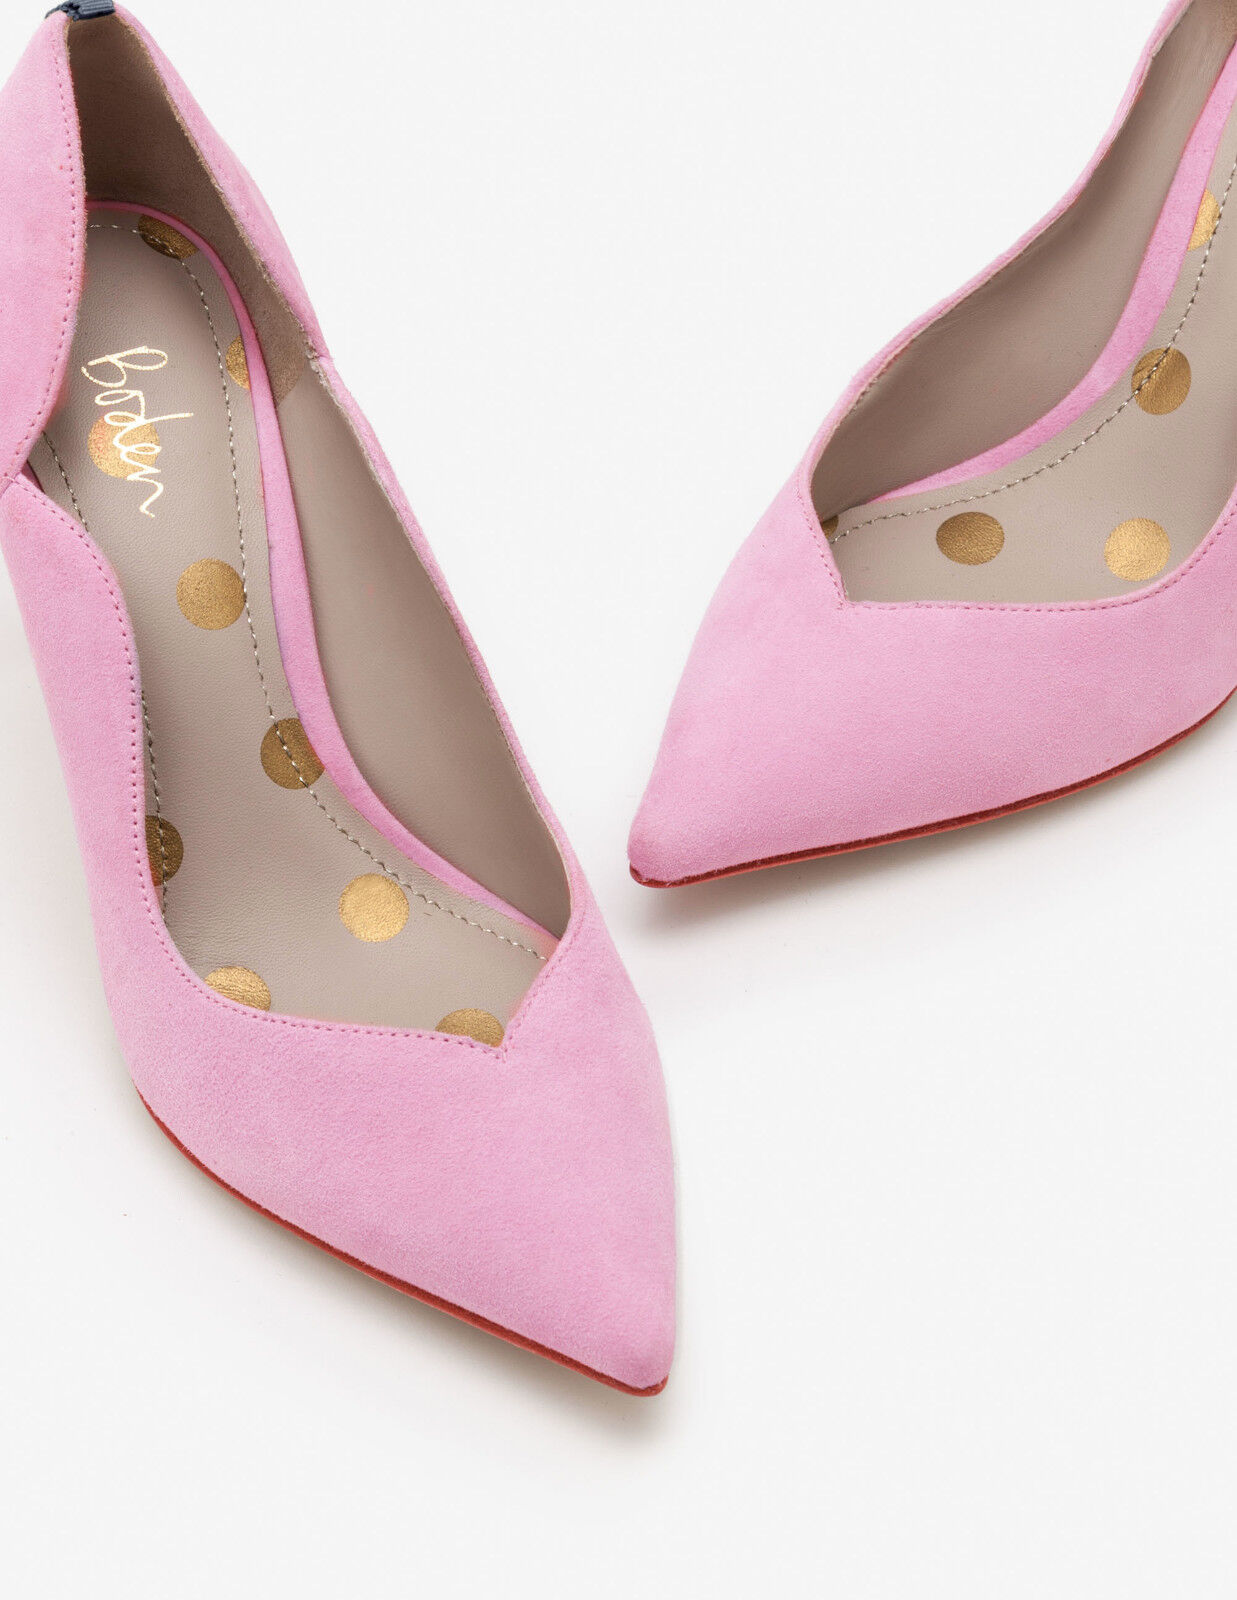 New Boden Besteselling pinkbay Pink Madison Courts Heels pumps shoes 39EU 8US 6UK